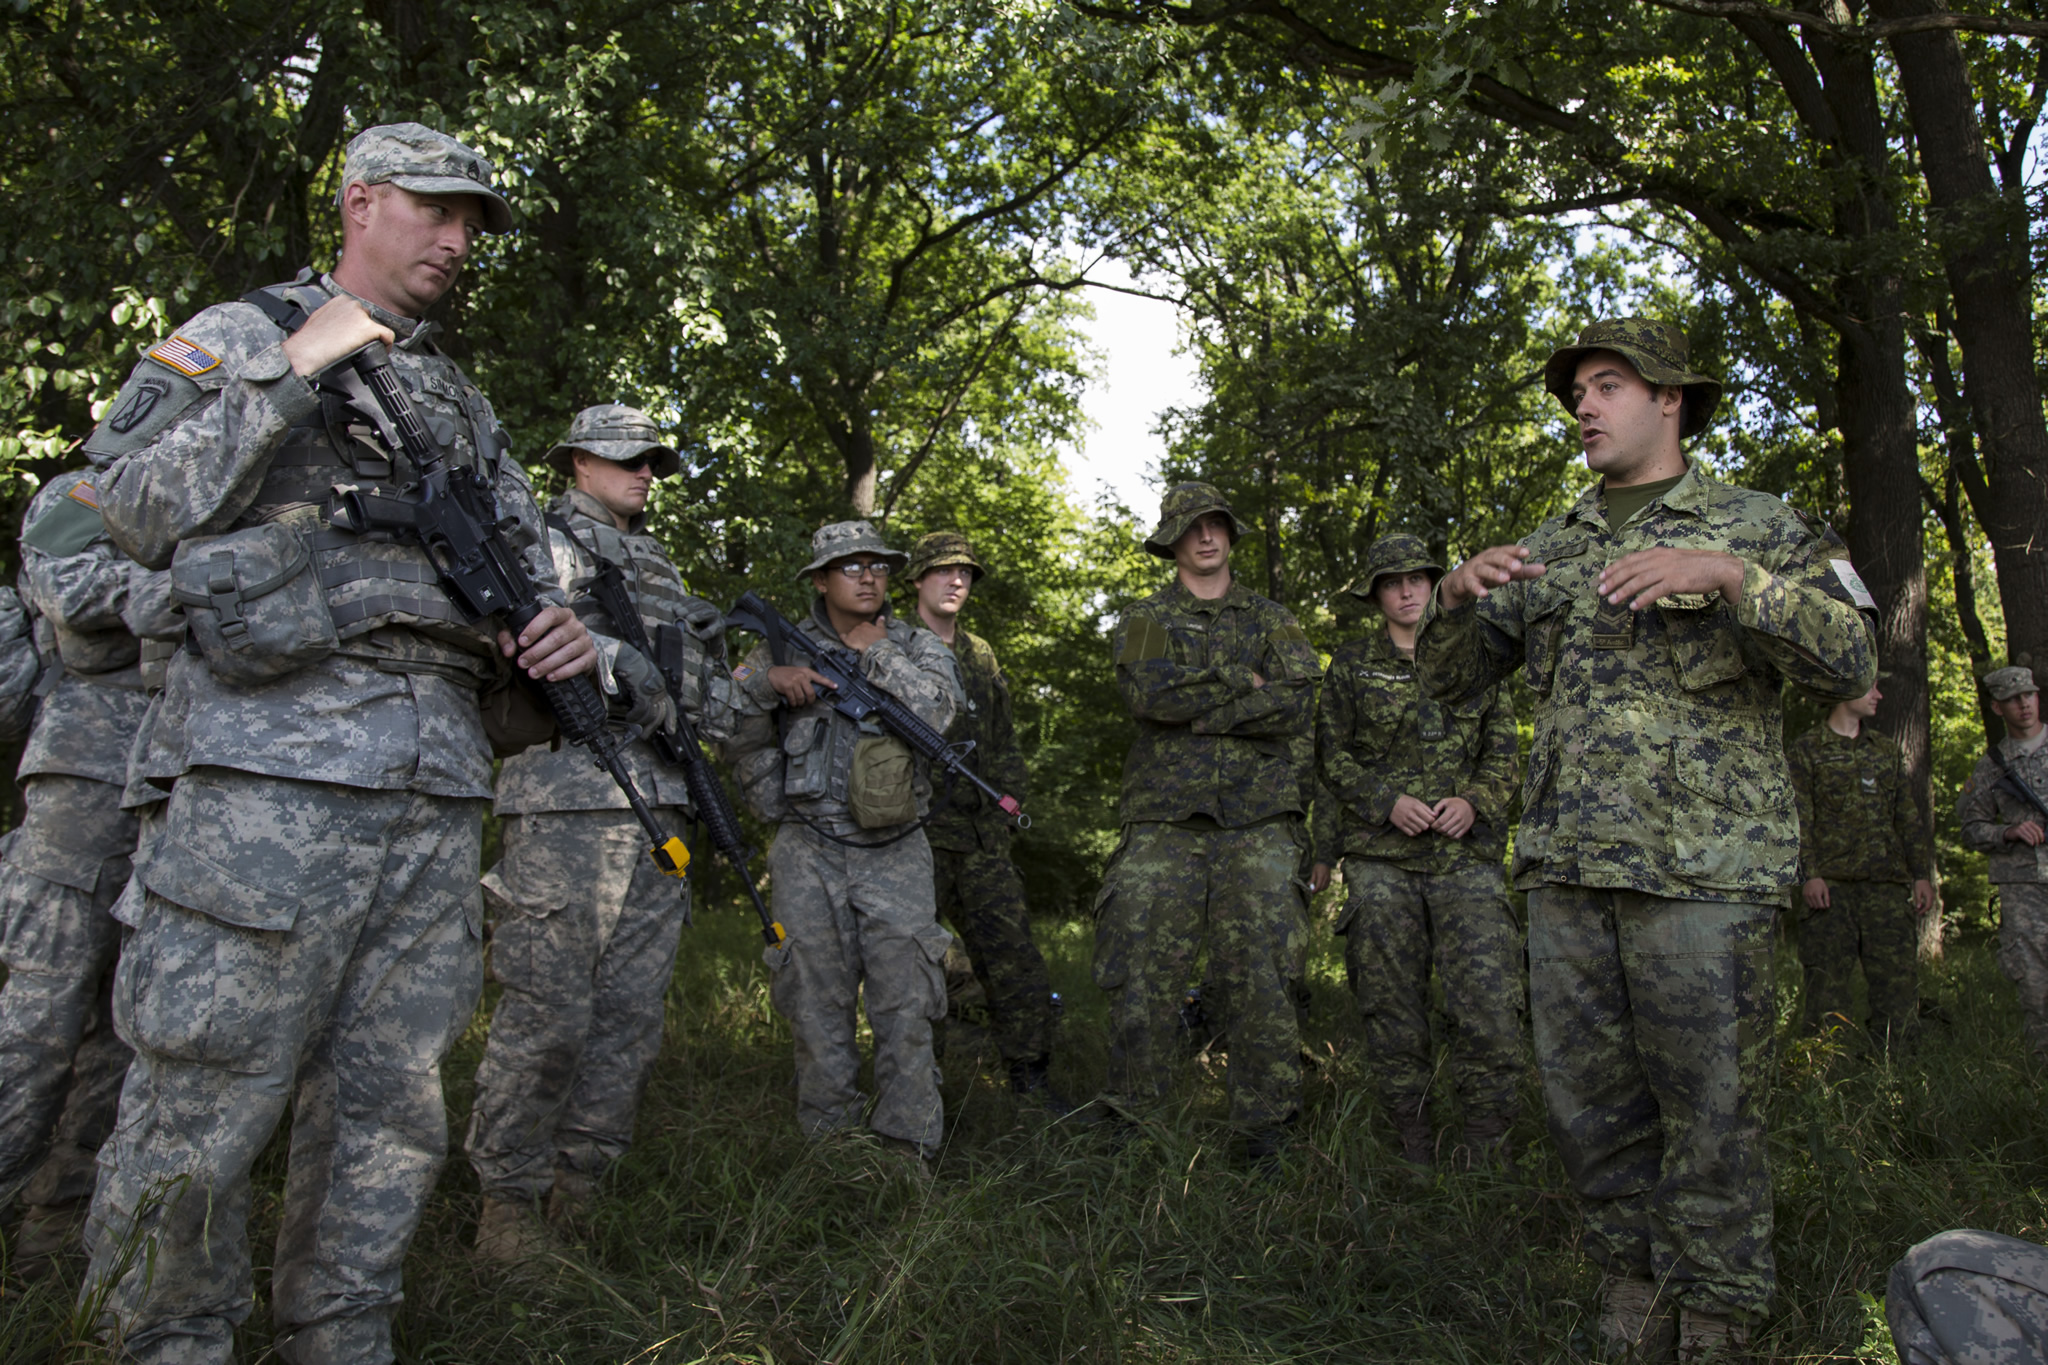 Corporal Sonny Gauthier (right), a medical technician of 5 Field Ambulance deployed as part of the Operation REASSURANCE Land Task Force (LTF), explains to LTF colleagues and American soldiers of the 116th Cavalry Brigade Combat Team how to triage casualties during Exercise SABER GUARDIAN, a multinational exercise comprising 10 countries, in Cincu, Romania on August 3, 2016. The LTF is deployed to Central and Eastern Europe to support NATO assurance and deterrence measures, and improve interoperability with allies. (Photo: Corporal Guillaume Gagnon, Liaison Officer Driver, Operation REASSURANCE Land Task Force)